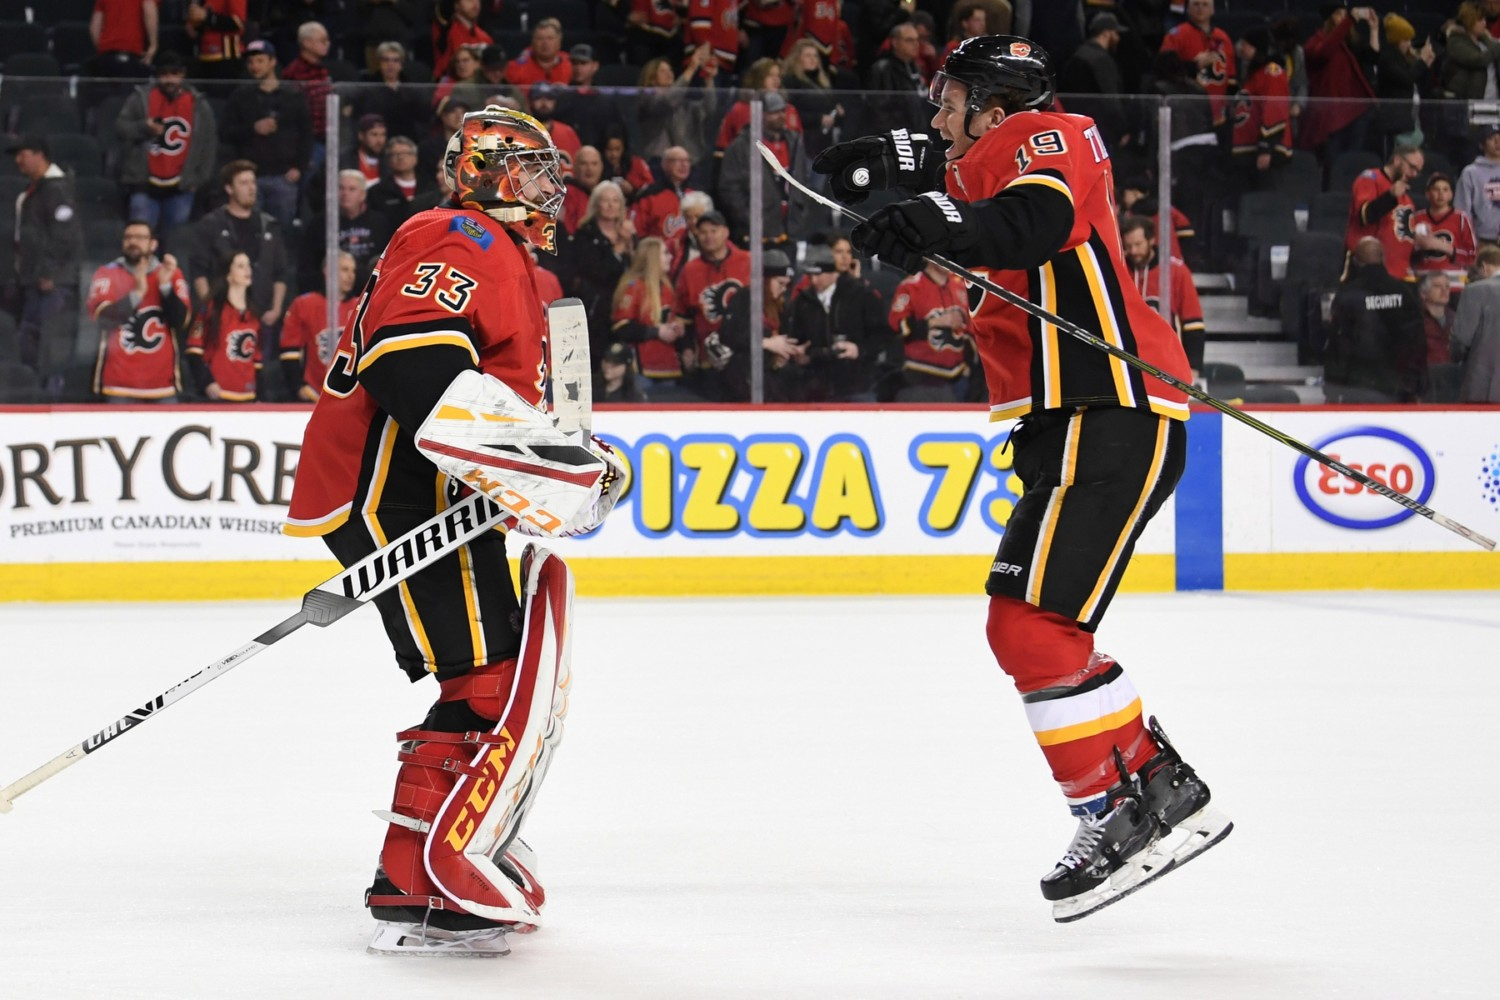 The Calgary Flames now turning focus internally to their RFAs like Matthew Tkachuk and David Rittich